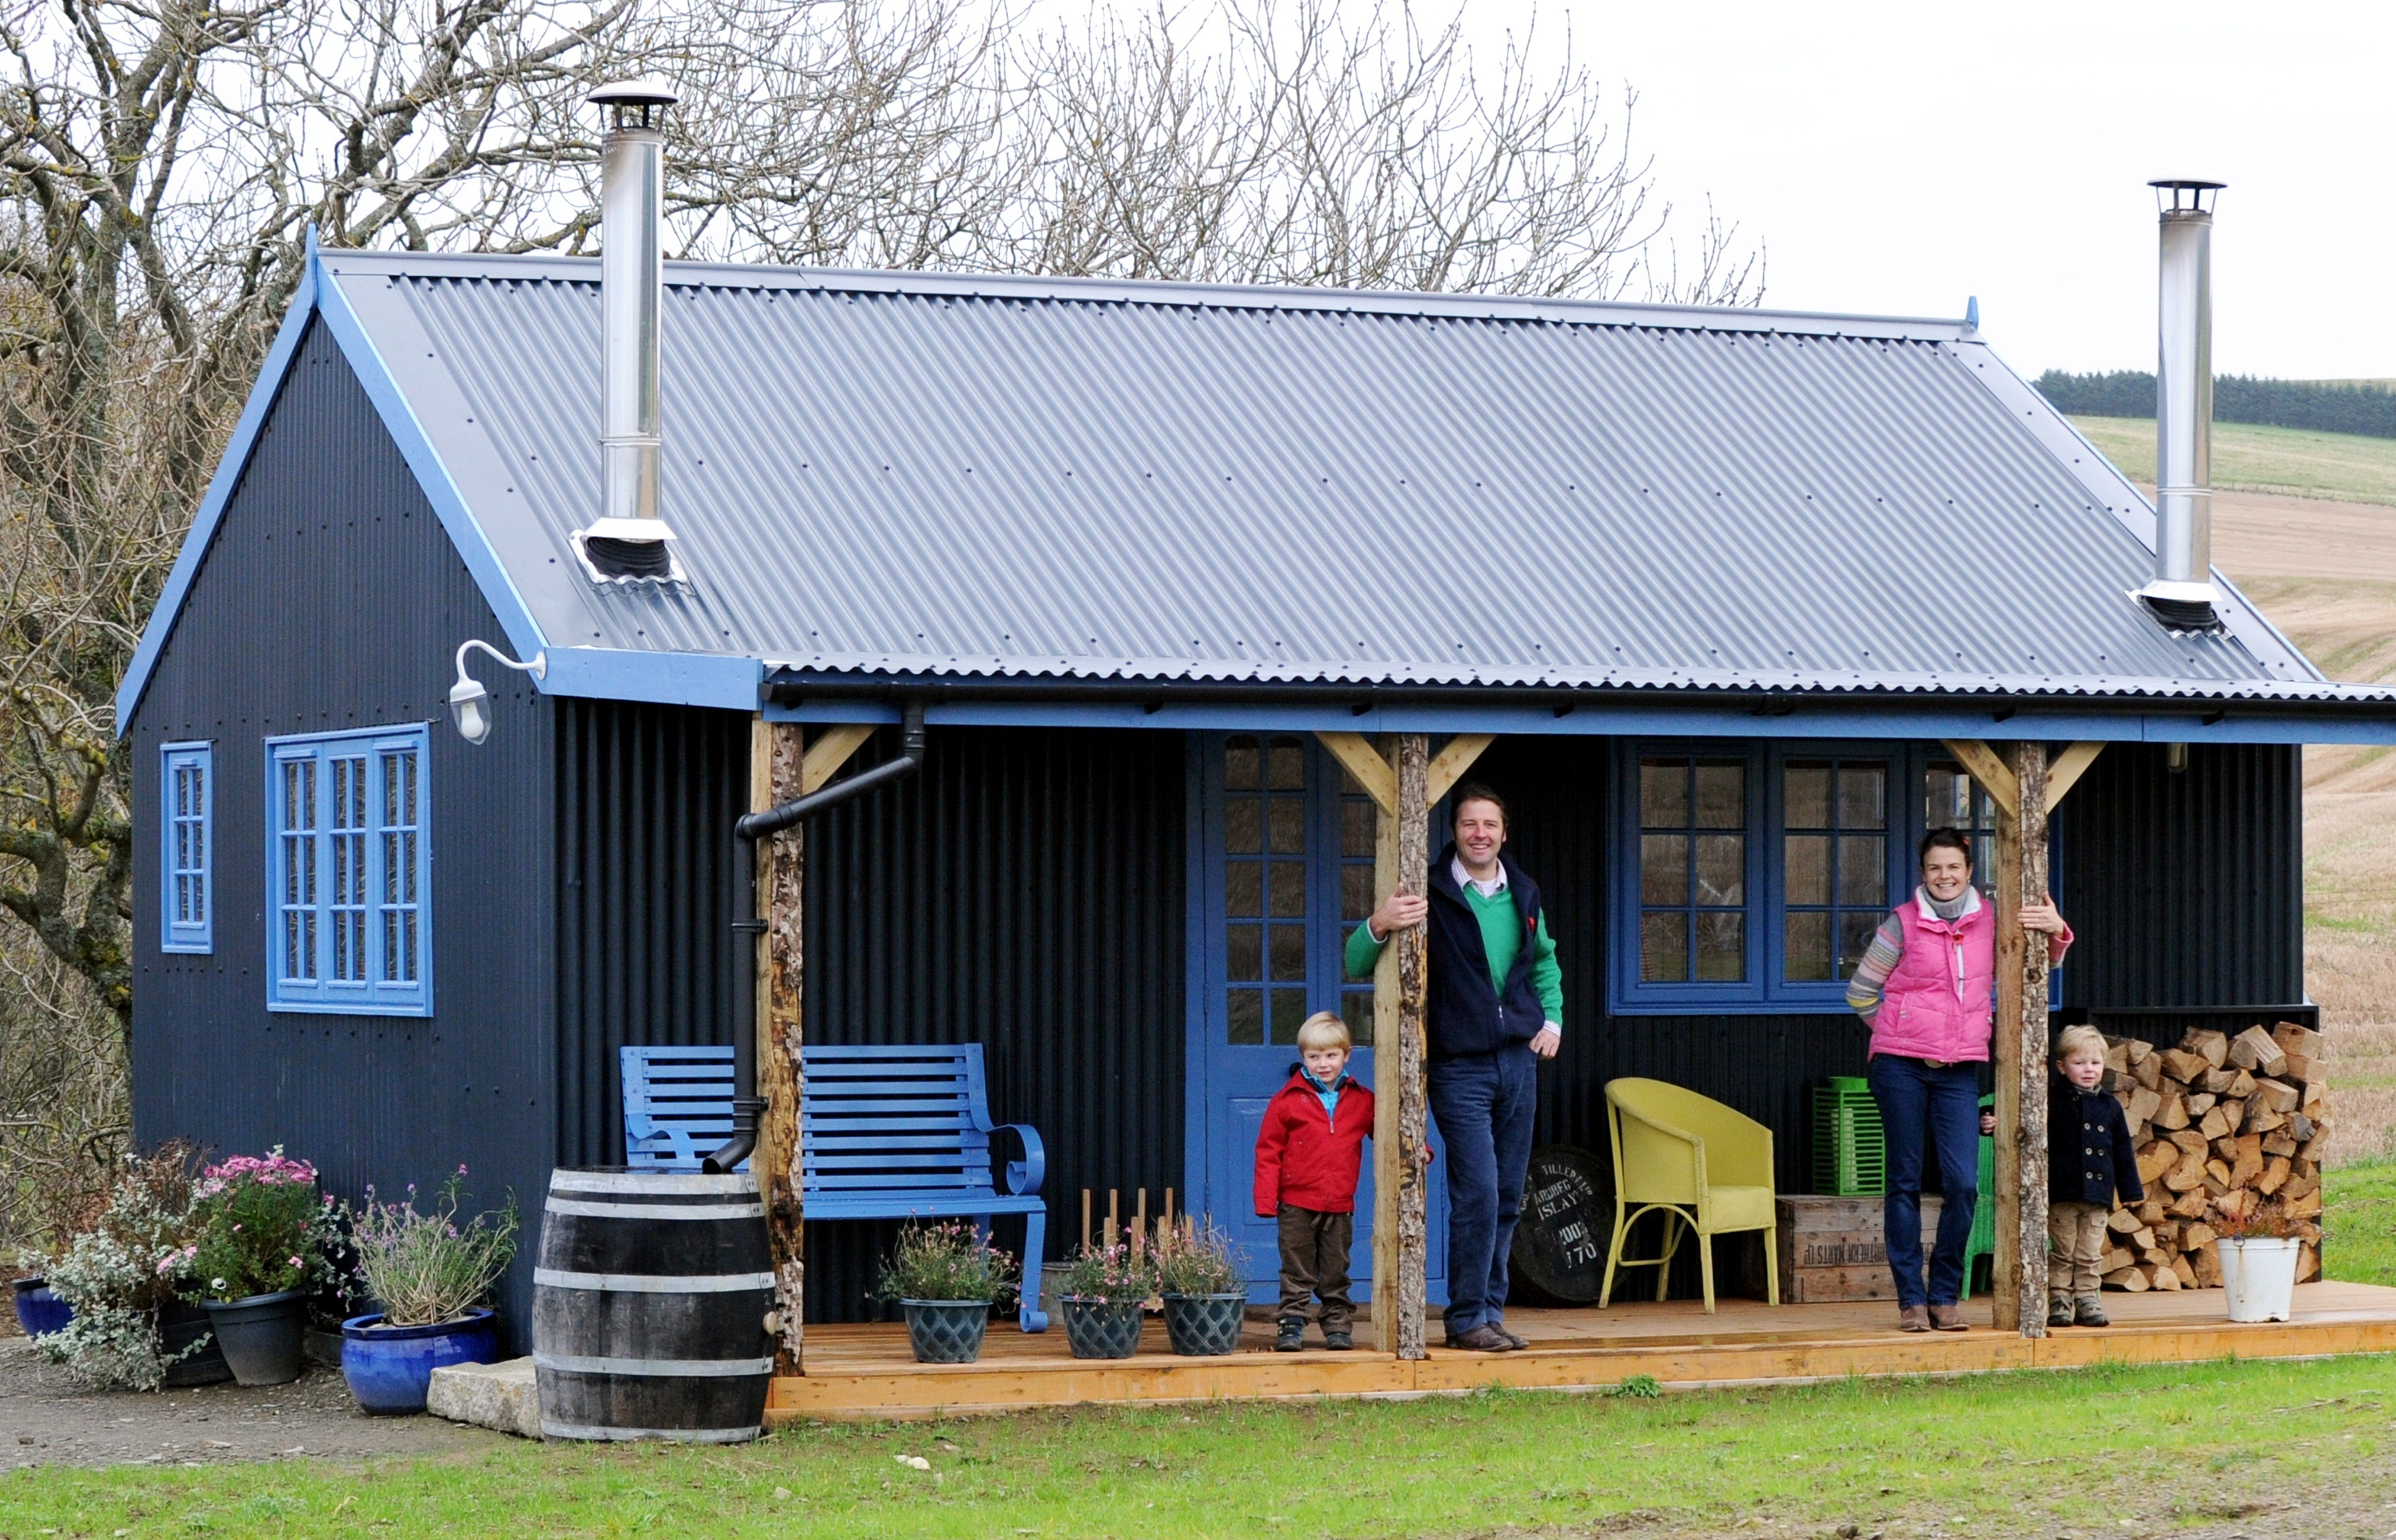 Jane and James Foad with children Hector, 2 and Freddie, 4 at their farm bothy at Newton of Begshill, Drumblade